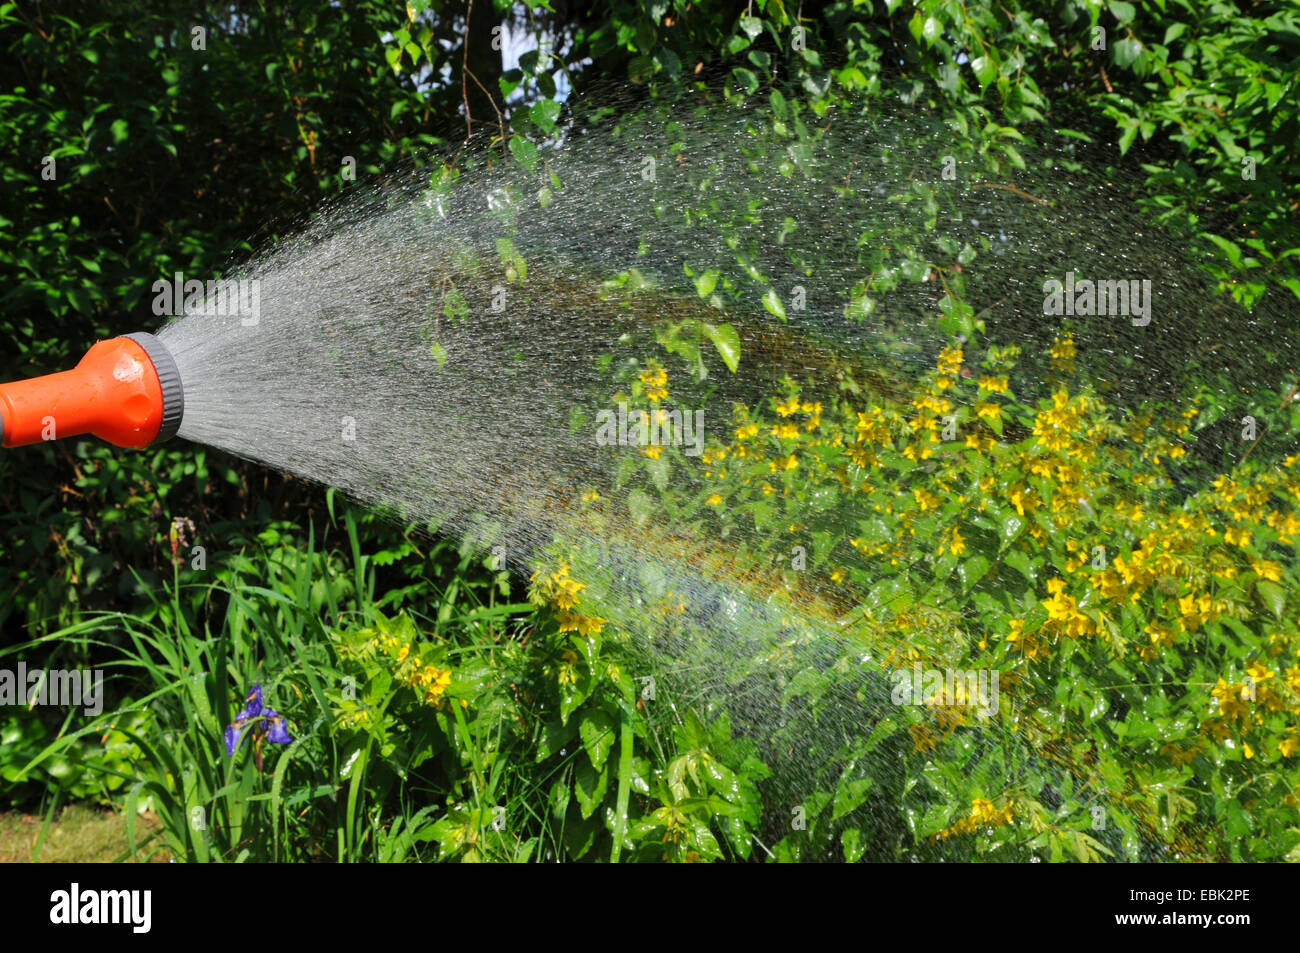 sprinkling flowers and a rainbow appears, Germany, Nordrhein Westfalen - Stock Image